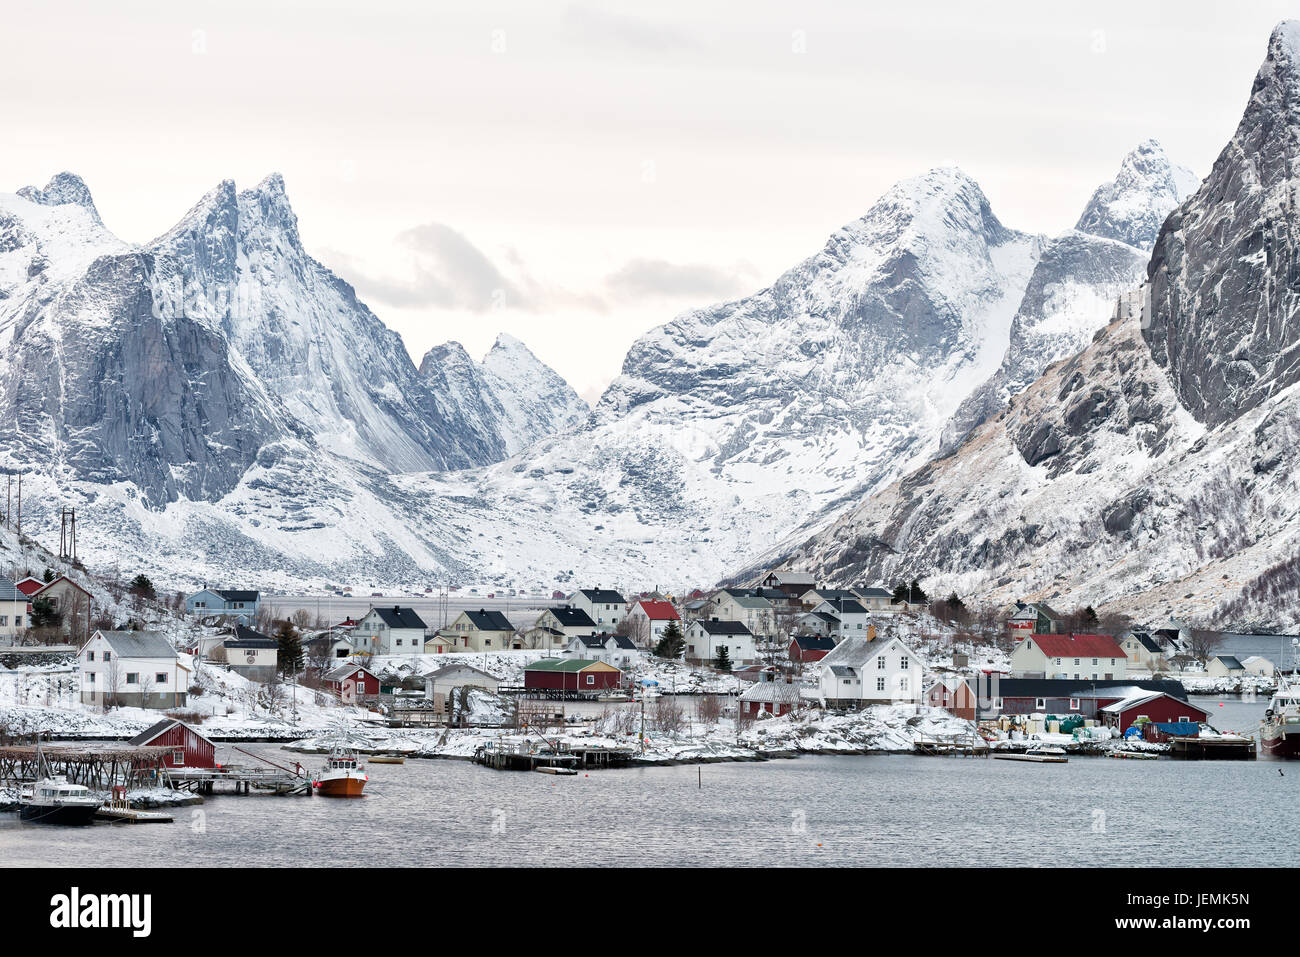 Reine village on the Lofoten Islands, Norway - Stock Image